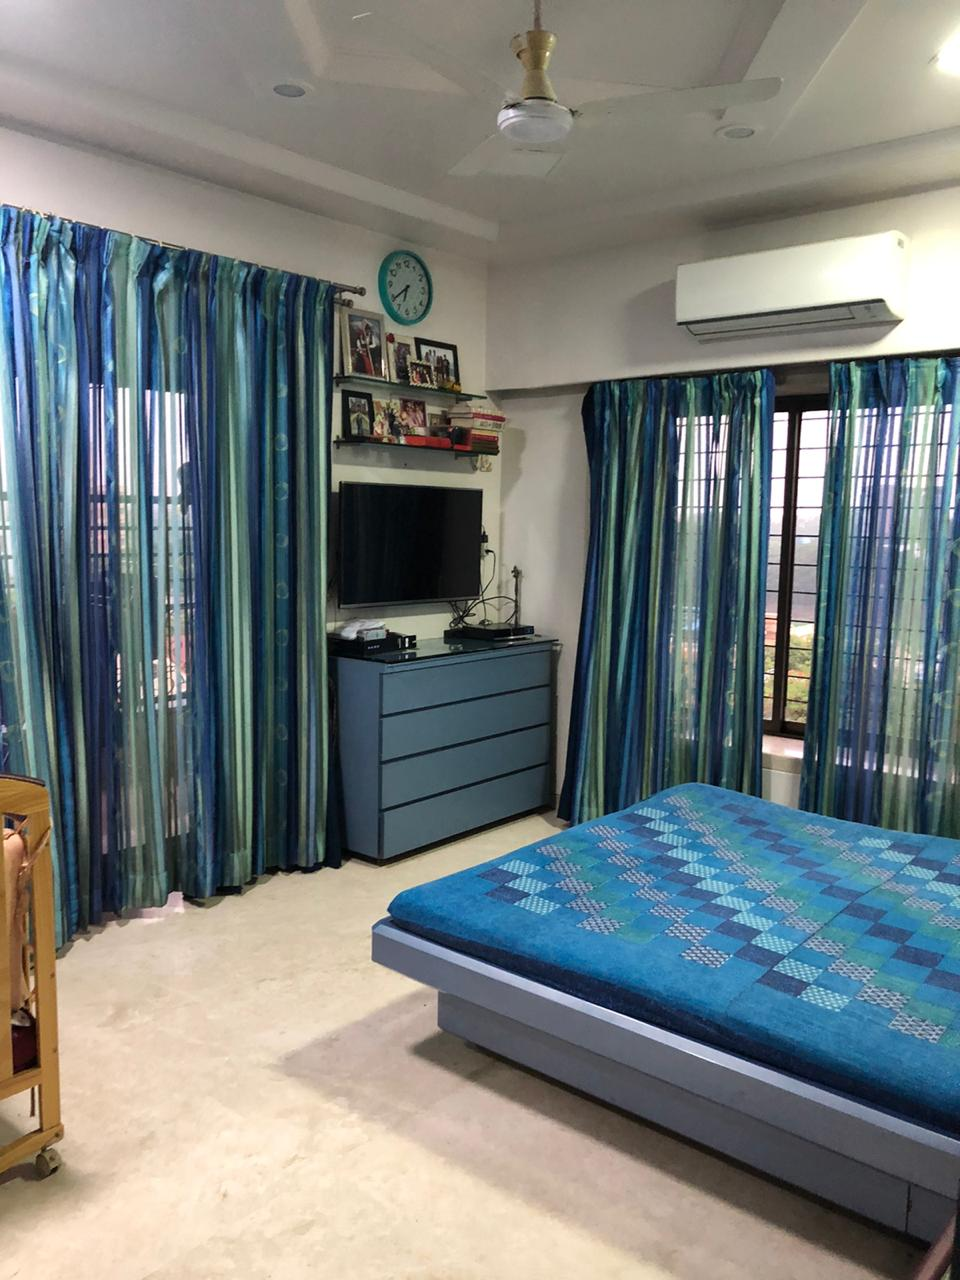 FOR SALE: 3 bhk furnished flat in Boat Club Road, Pune